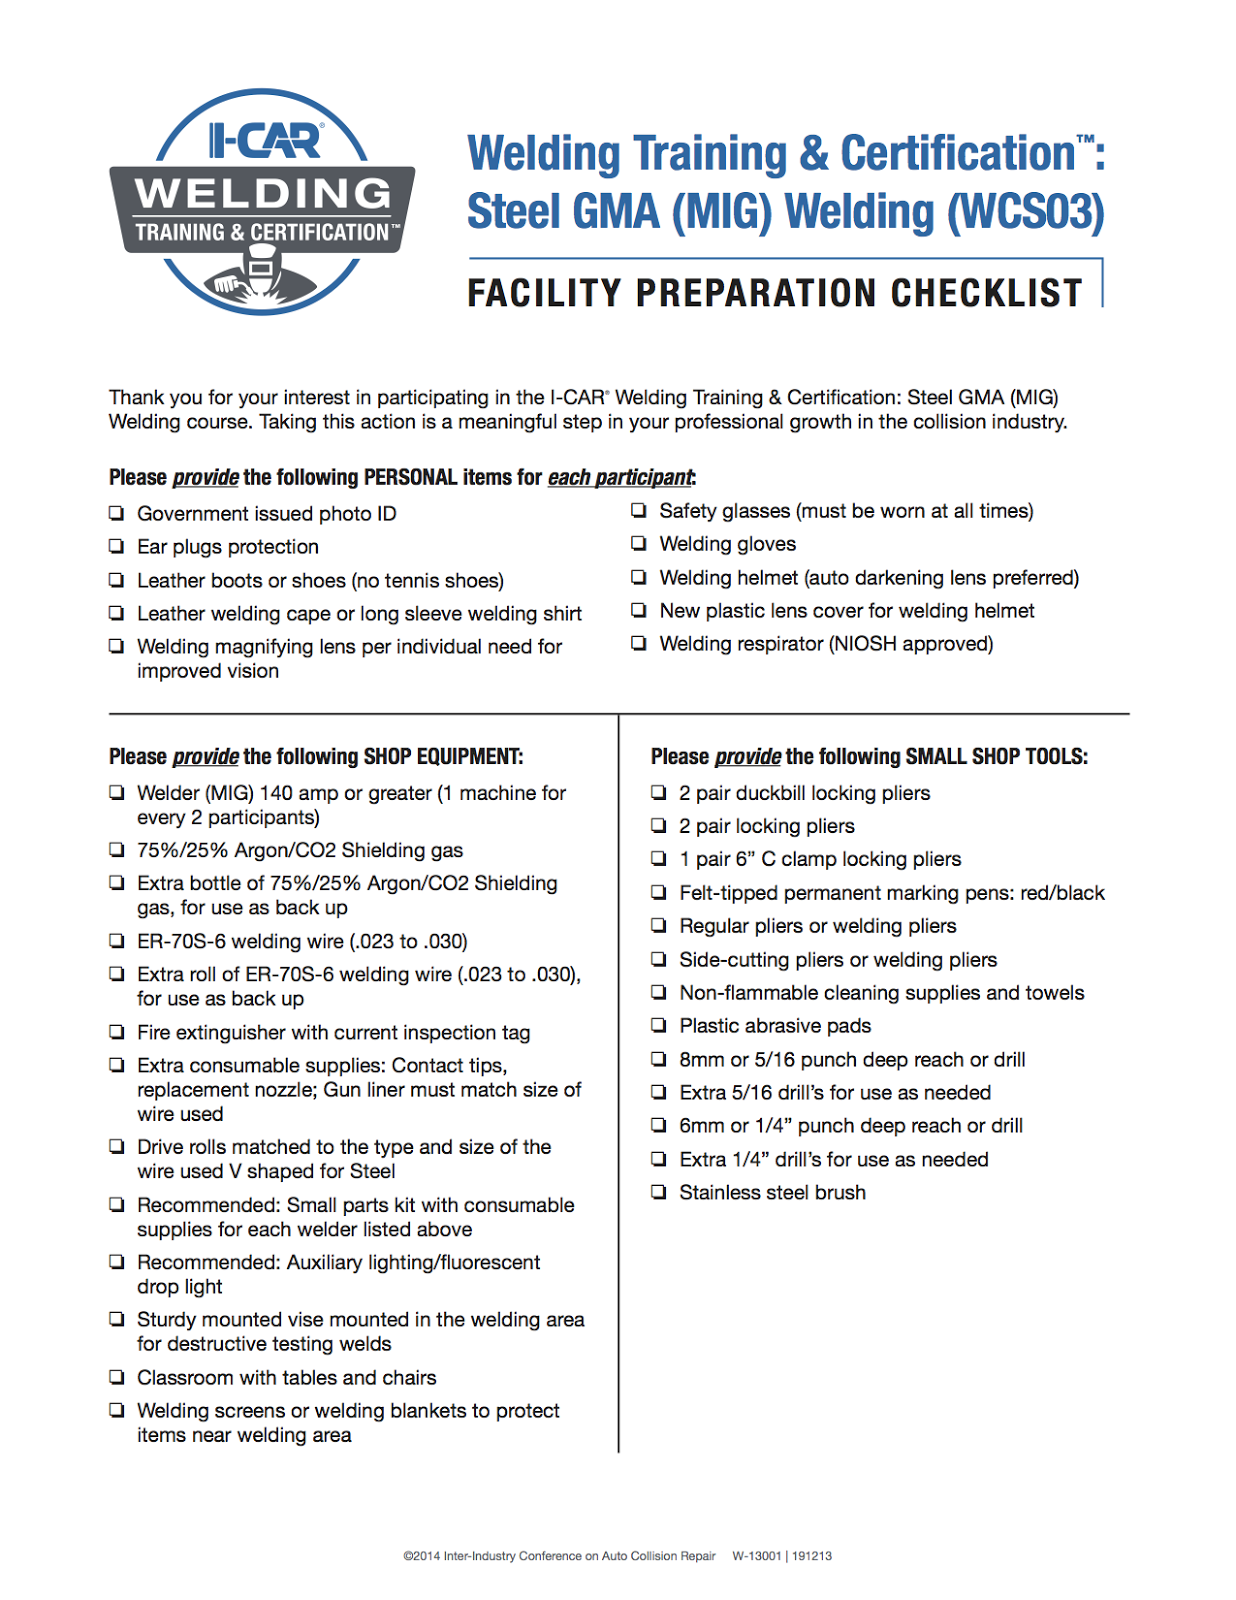 Pro spot welding wondering what gas welding wire and equipment i car recommends for their steel gma mig welding training certification 1betcityfo Gallery